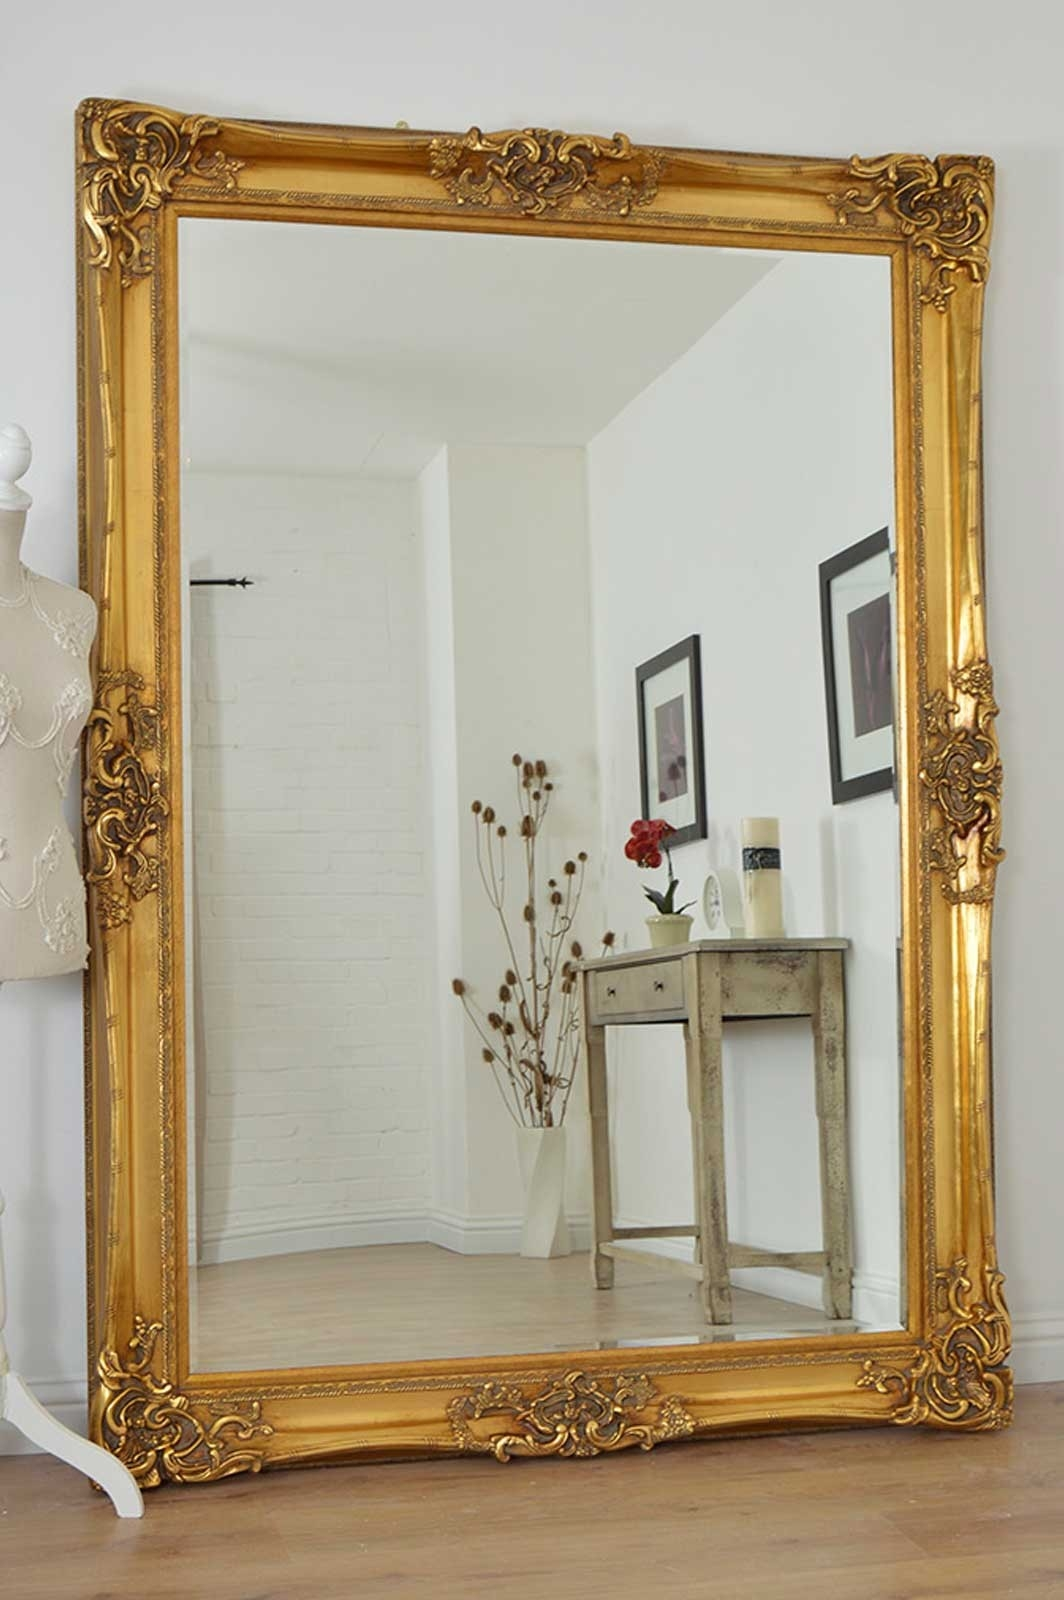 Large Gold Very Ornate Antique Design Wall Mirror 7ft X 5ft 213cm Regarding Old Fashioned Mirrors For Sale (View 5 of 15)